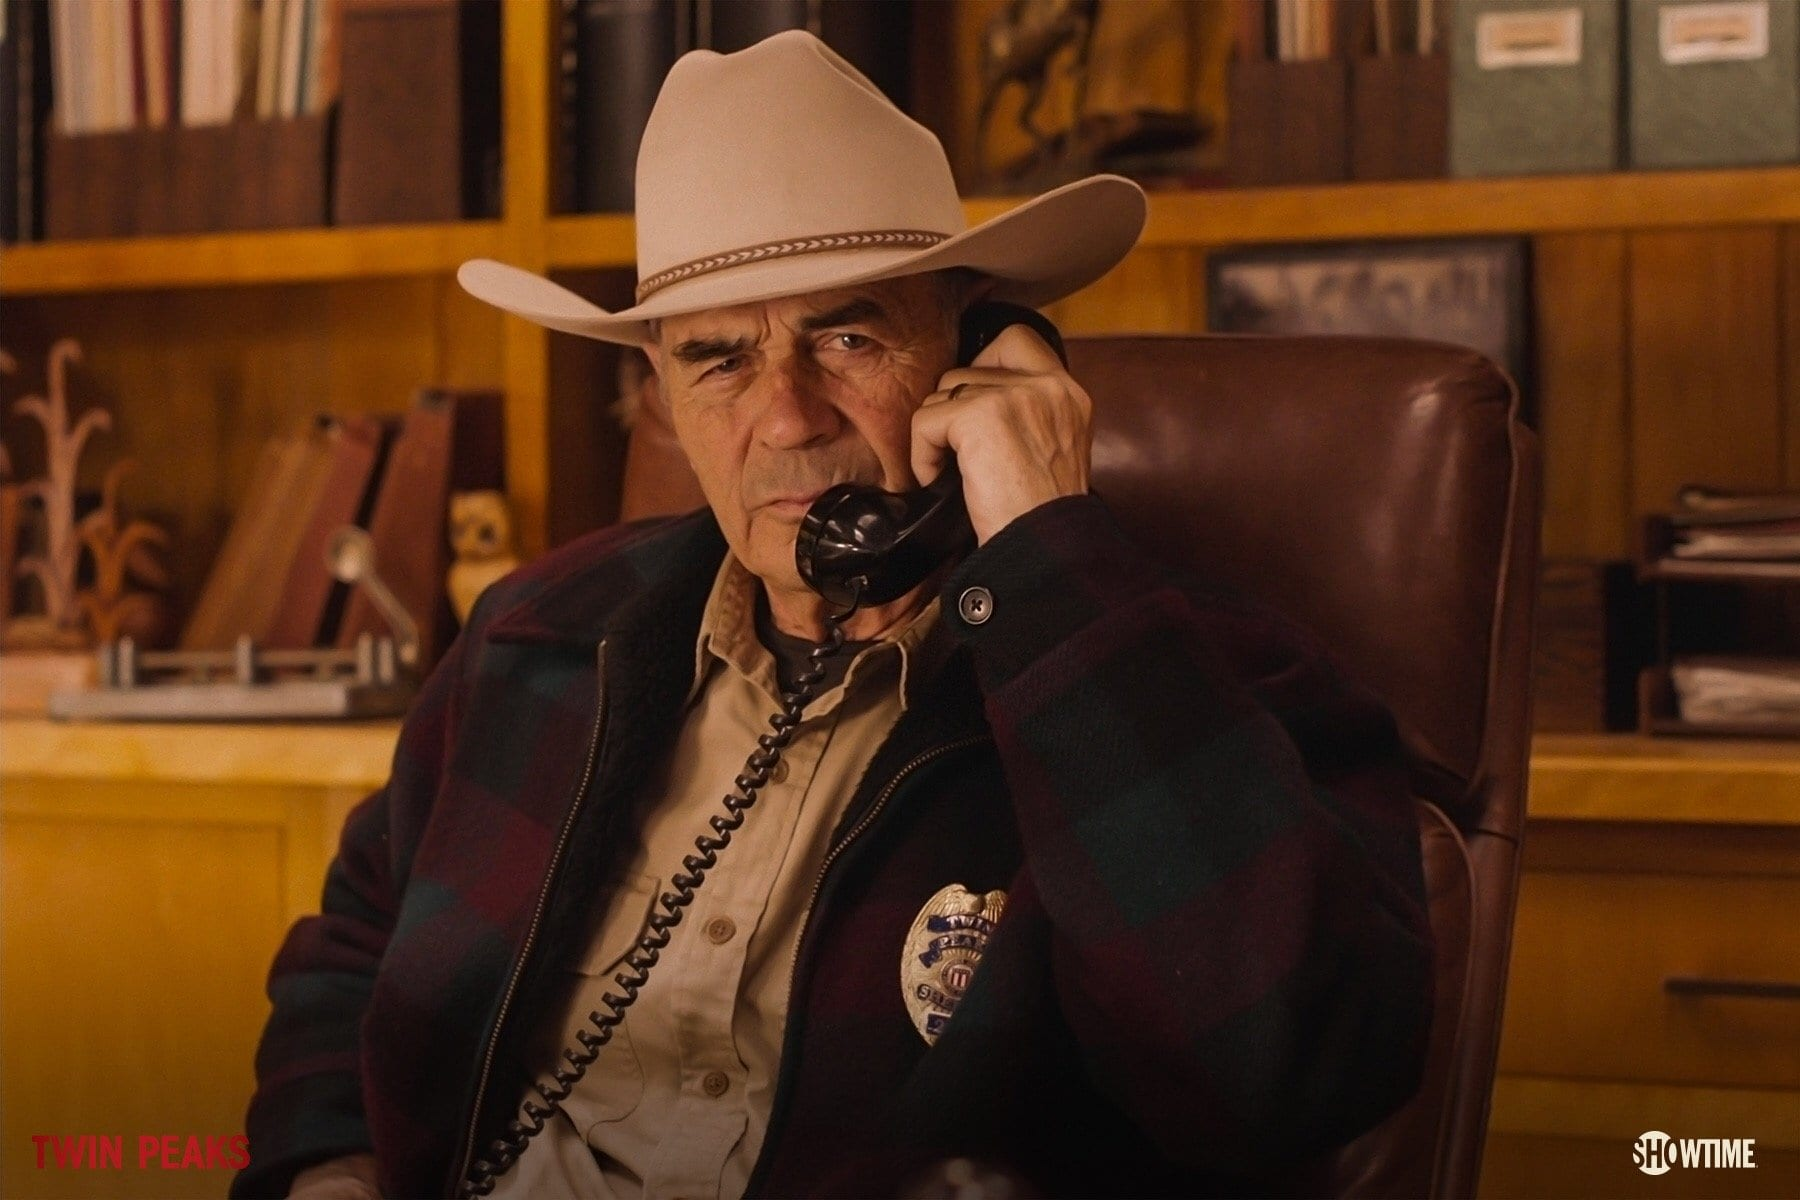 Frank Truman on the phone wearing a cowboy hat